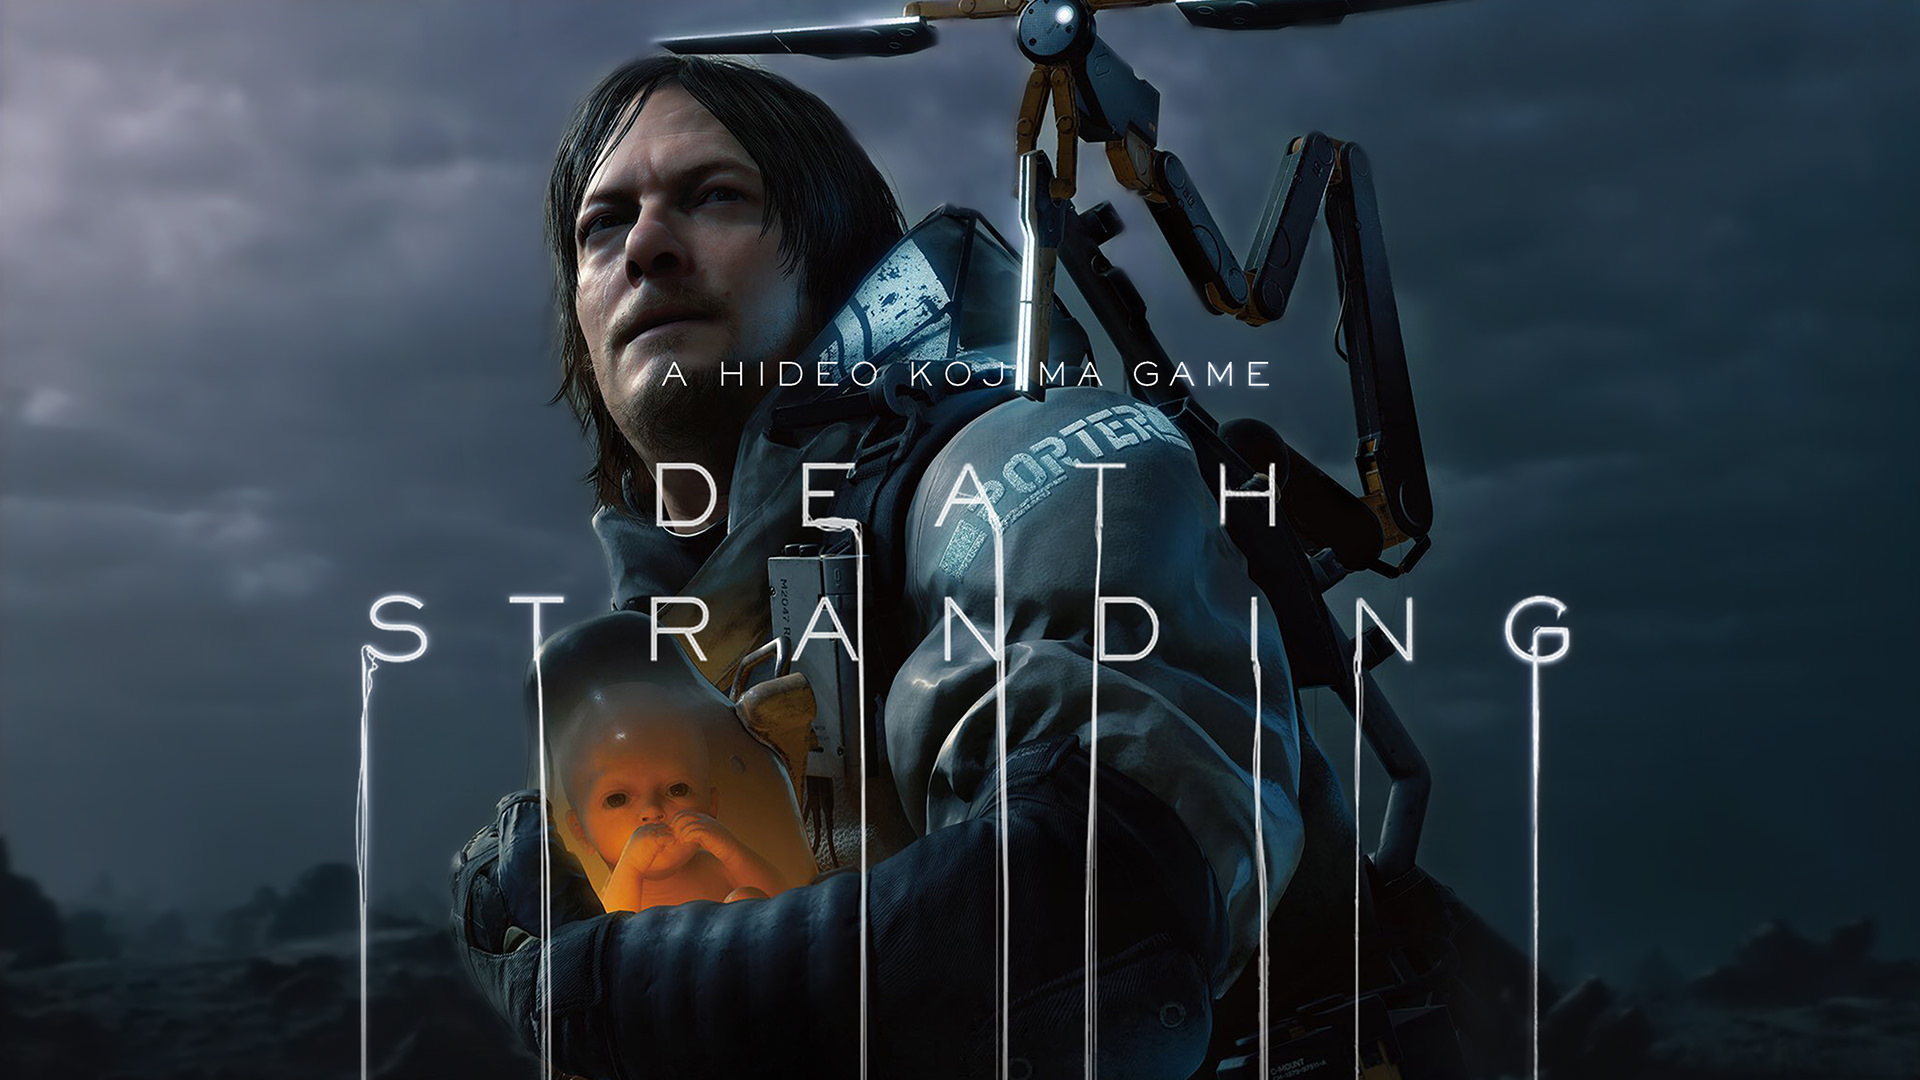 Kojima Teases Death Stranding E3 2018 Reveal With This Cryptic Image